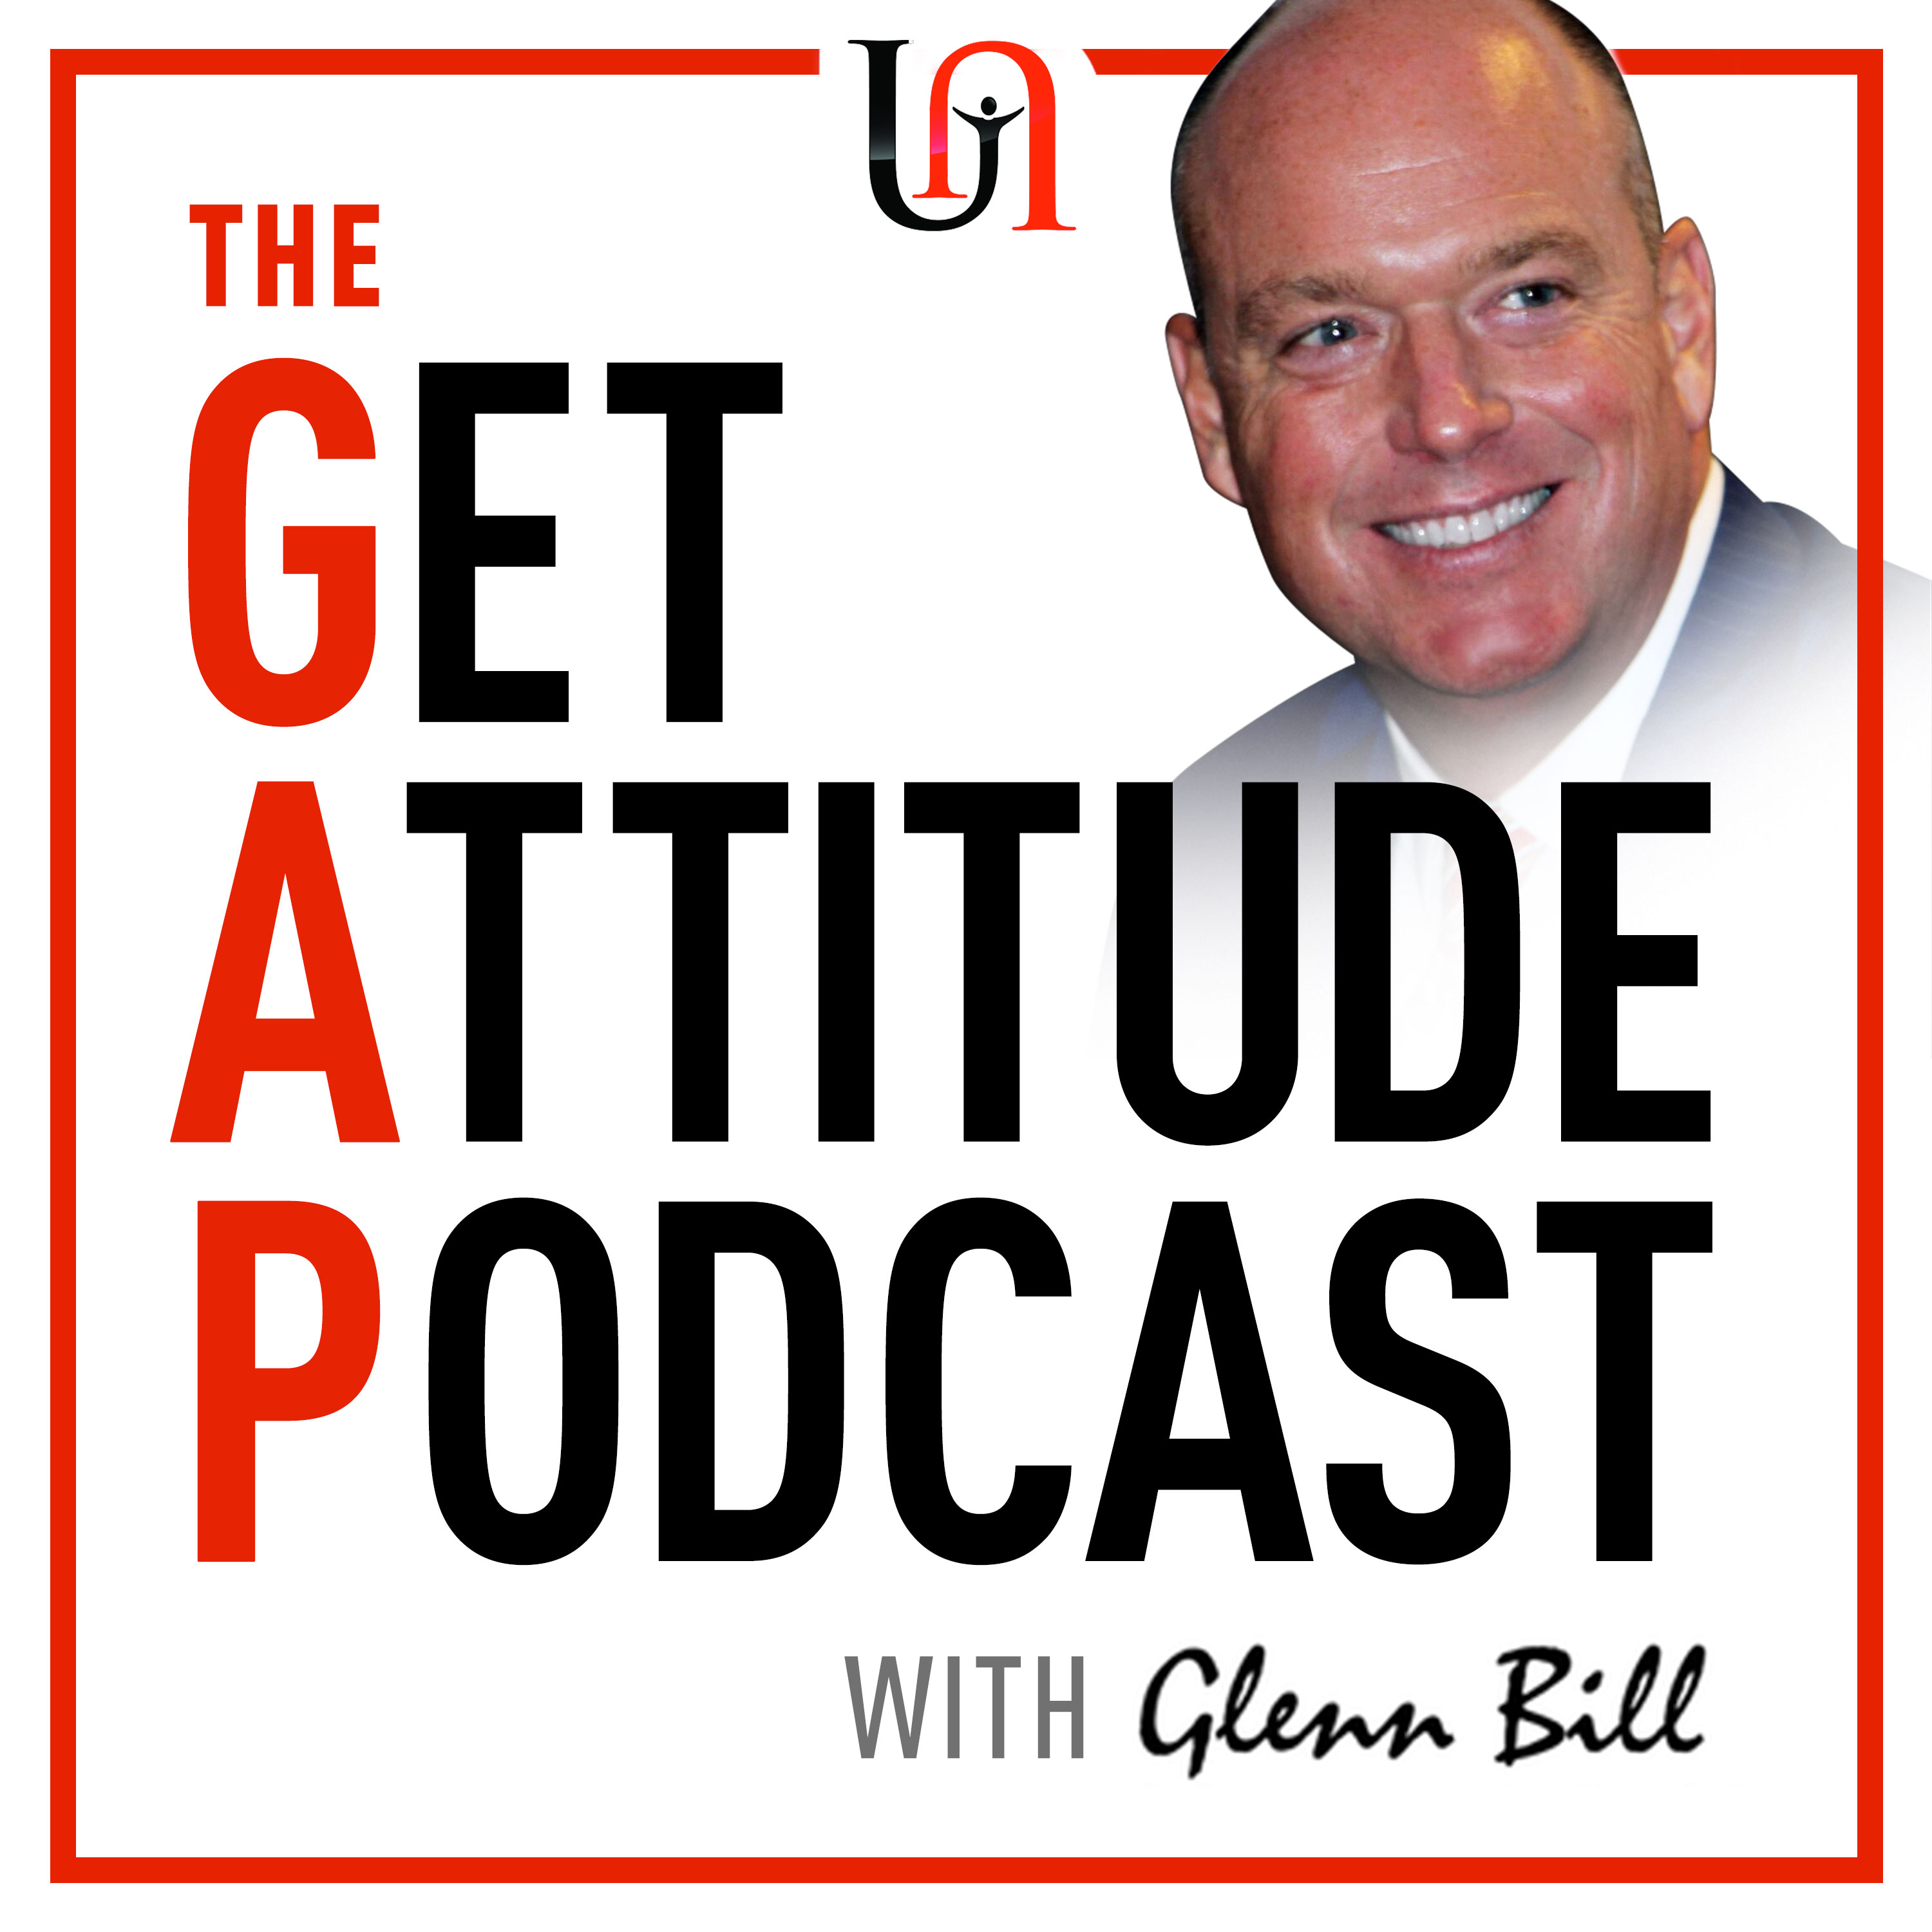 Get Attitude Podcast with Glenn Bill show art